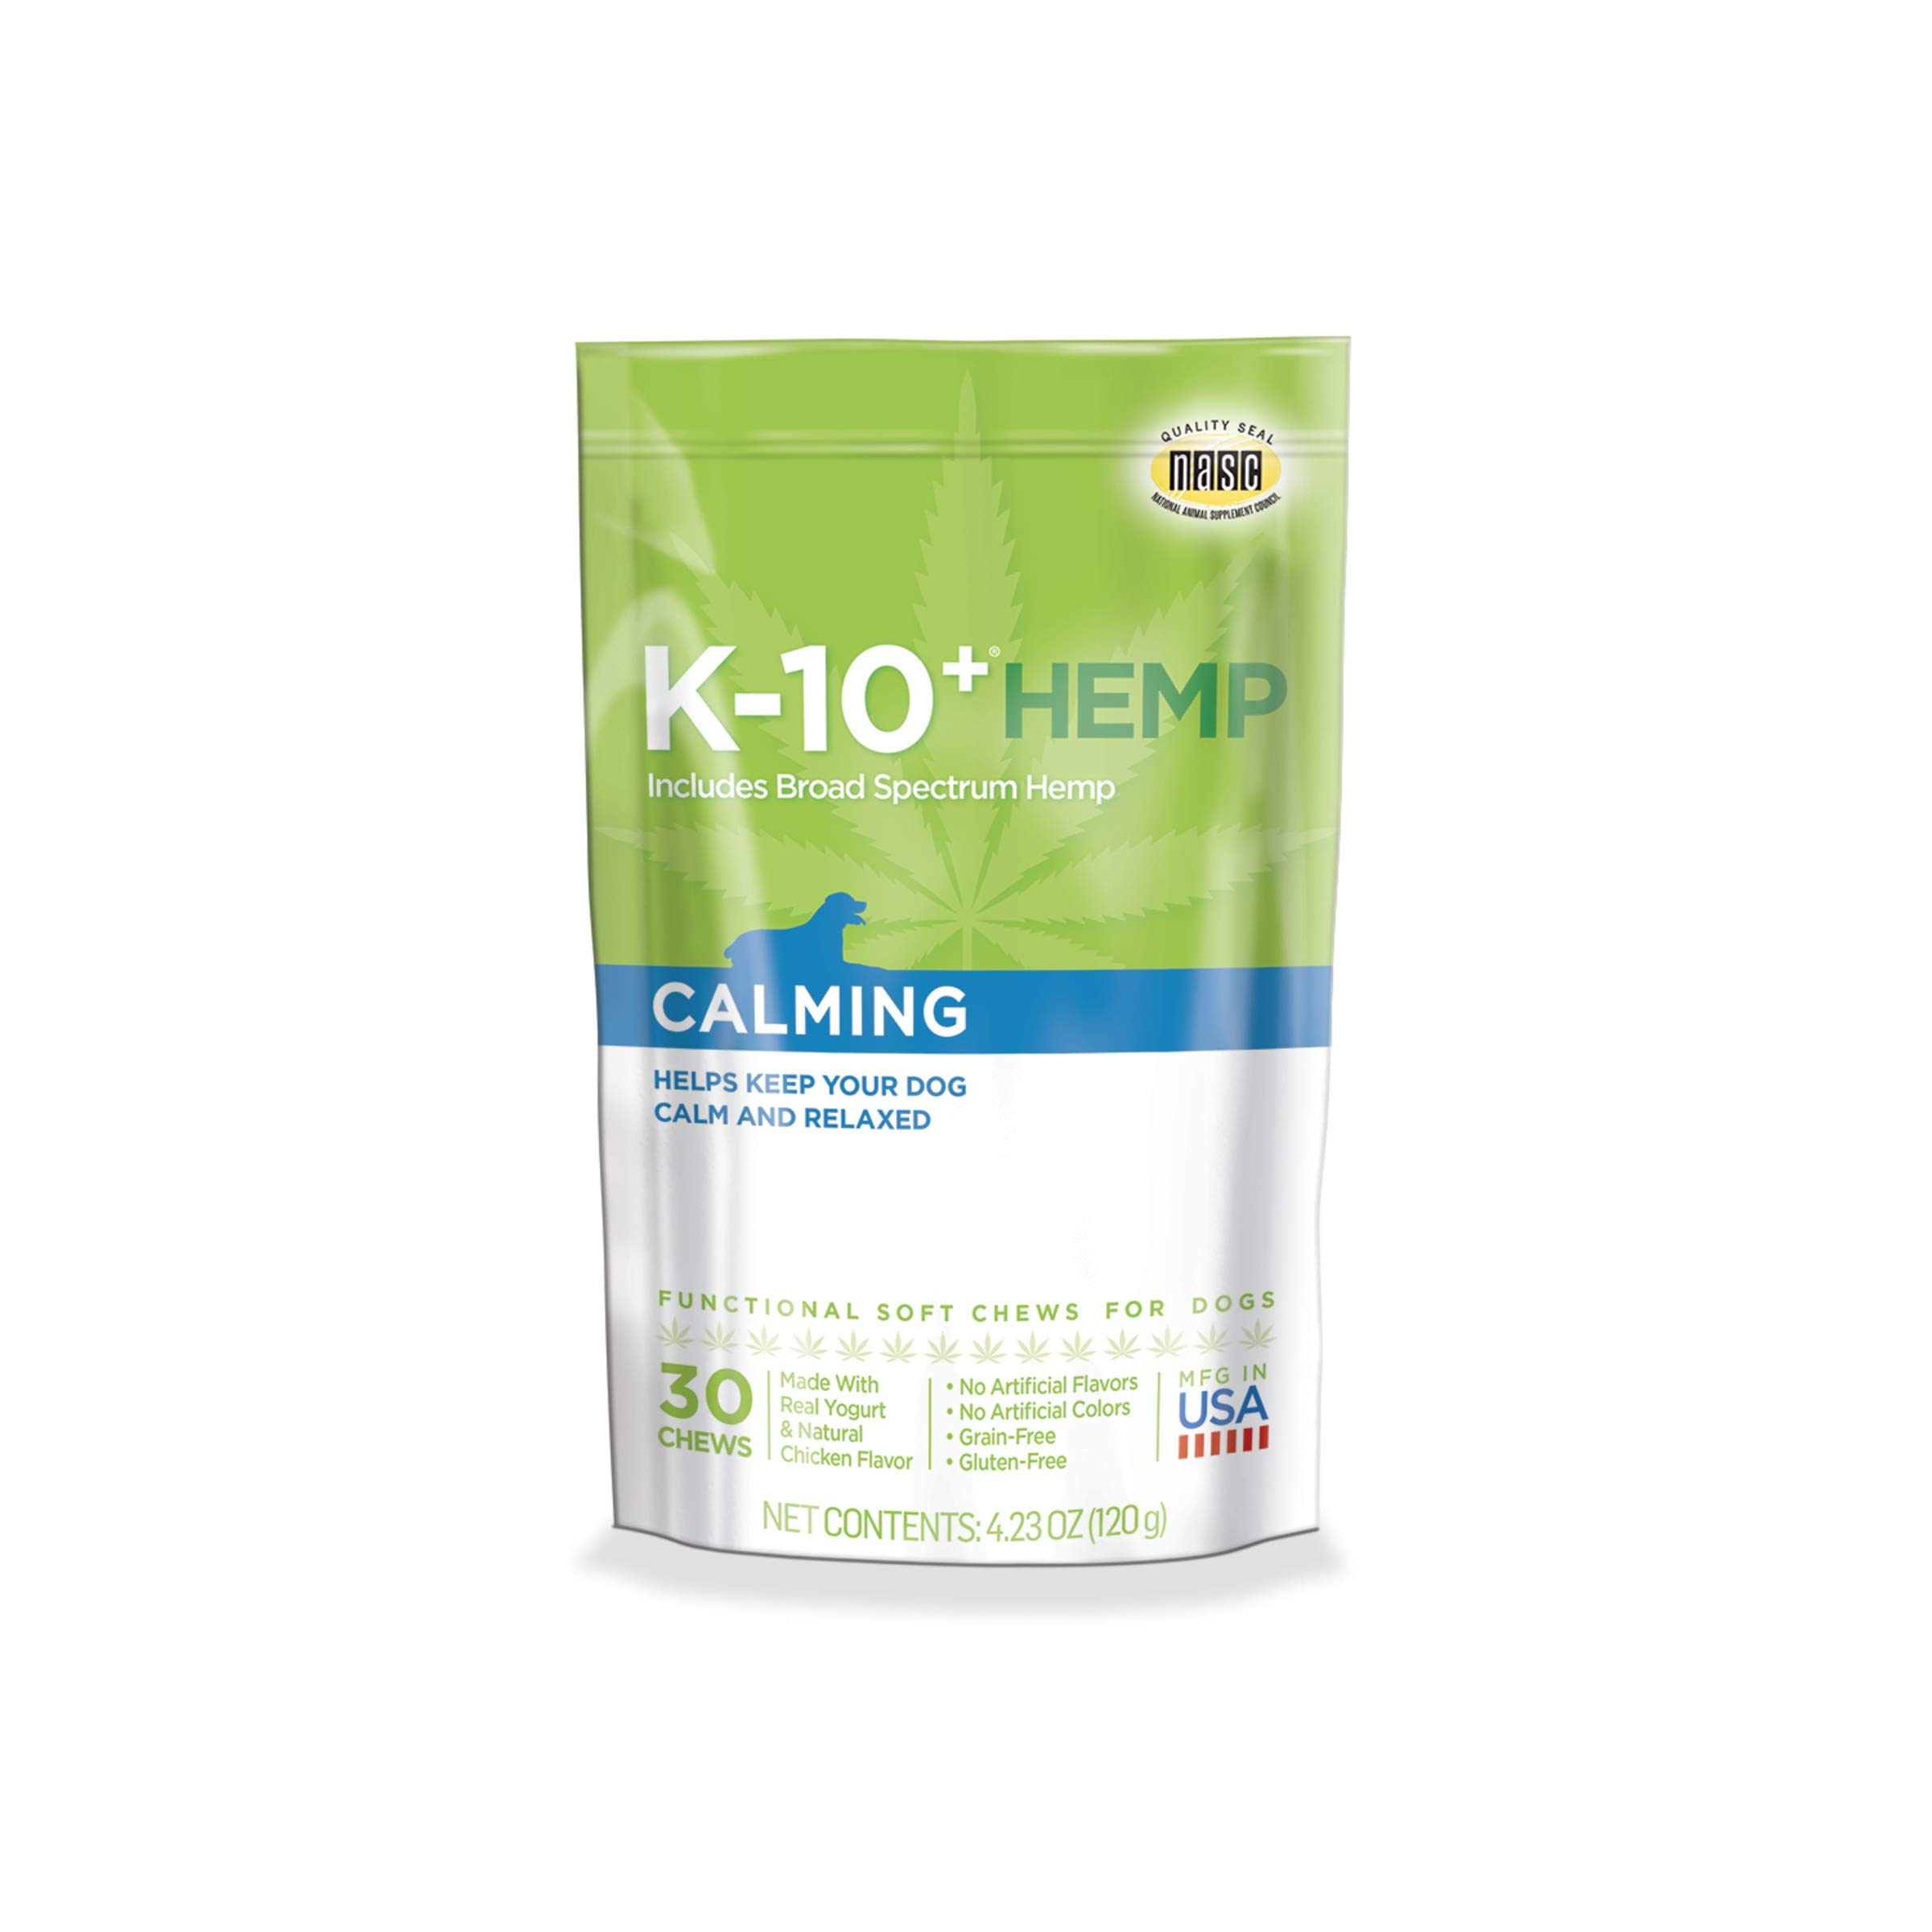 K-10+ Hemp Calming Daily Supplement for Dogs - 4.23 oz. Pouch by K-10+